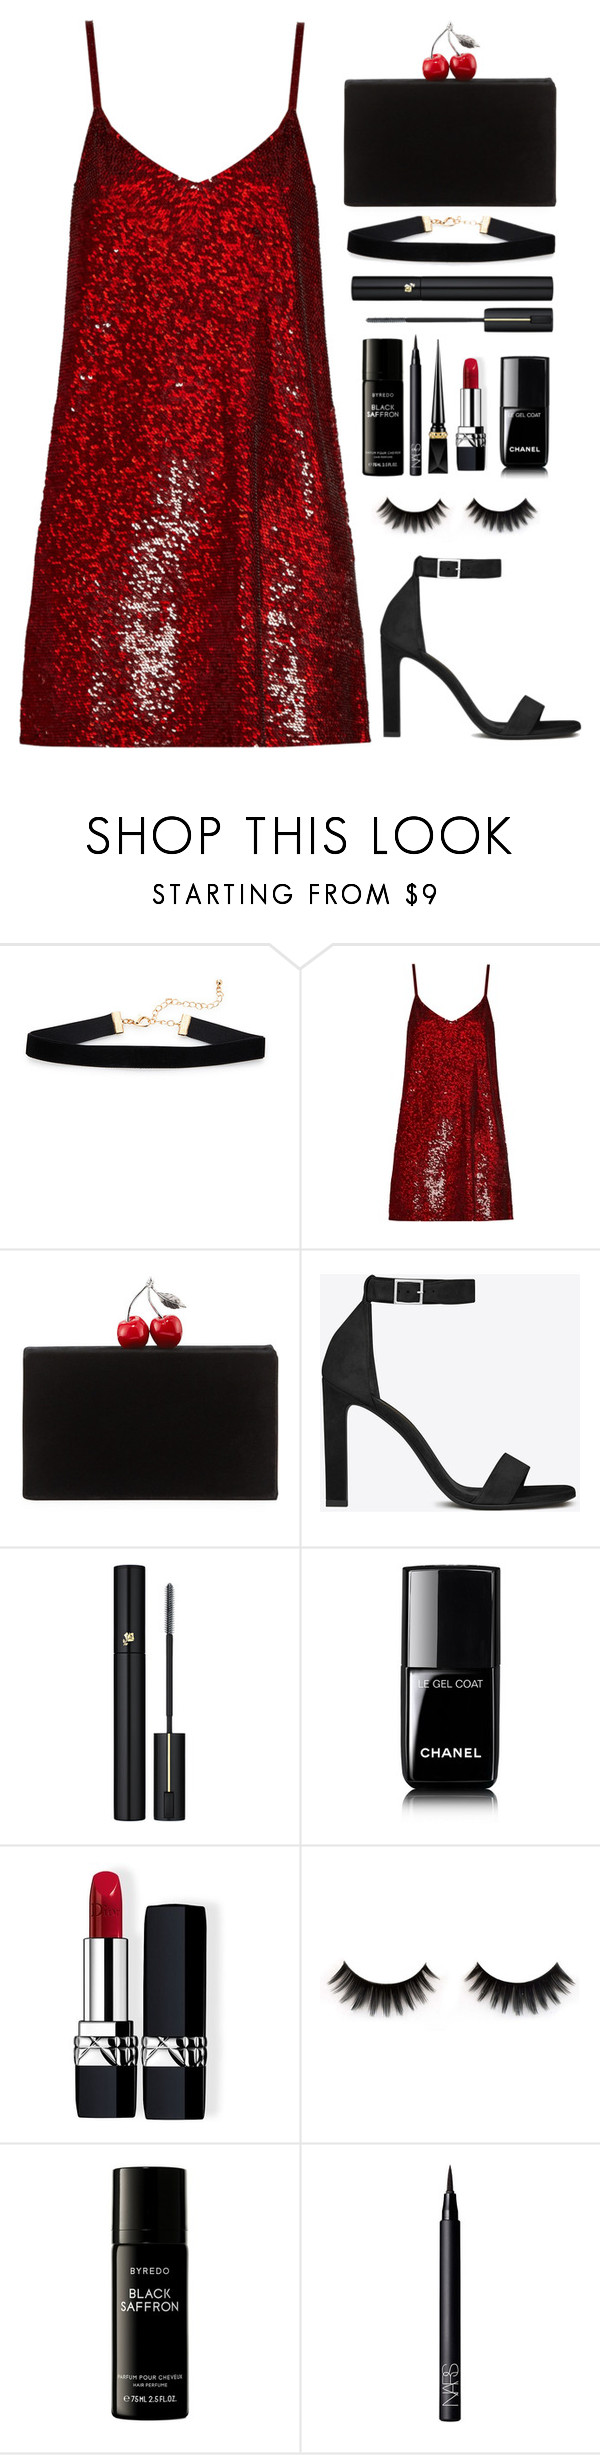 """The Red Dress"" by melaniemeran ❤ liked on Polyvore featuring Ashish, Edie Parker, Yves Saint Laurent, Lancôme, Chanel, Christian Dior, Liberty, NARS Cosmetics and Christian Louboutin"